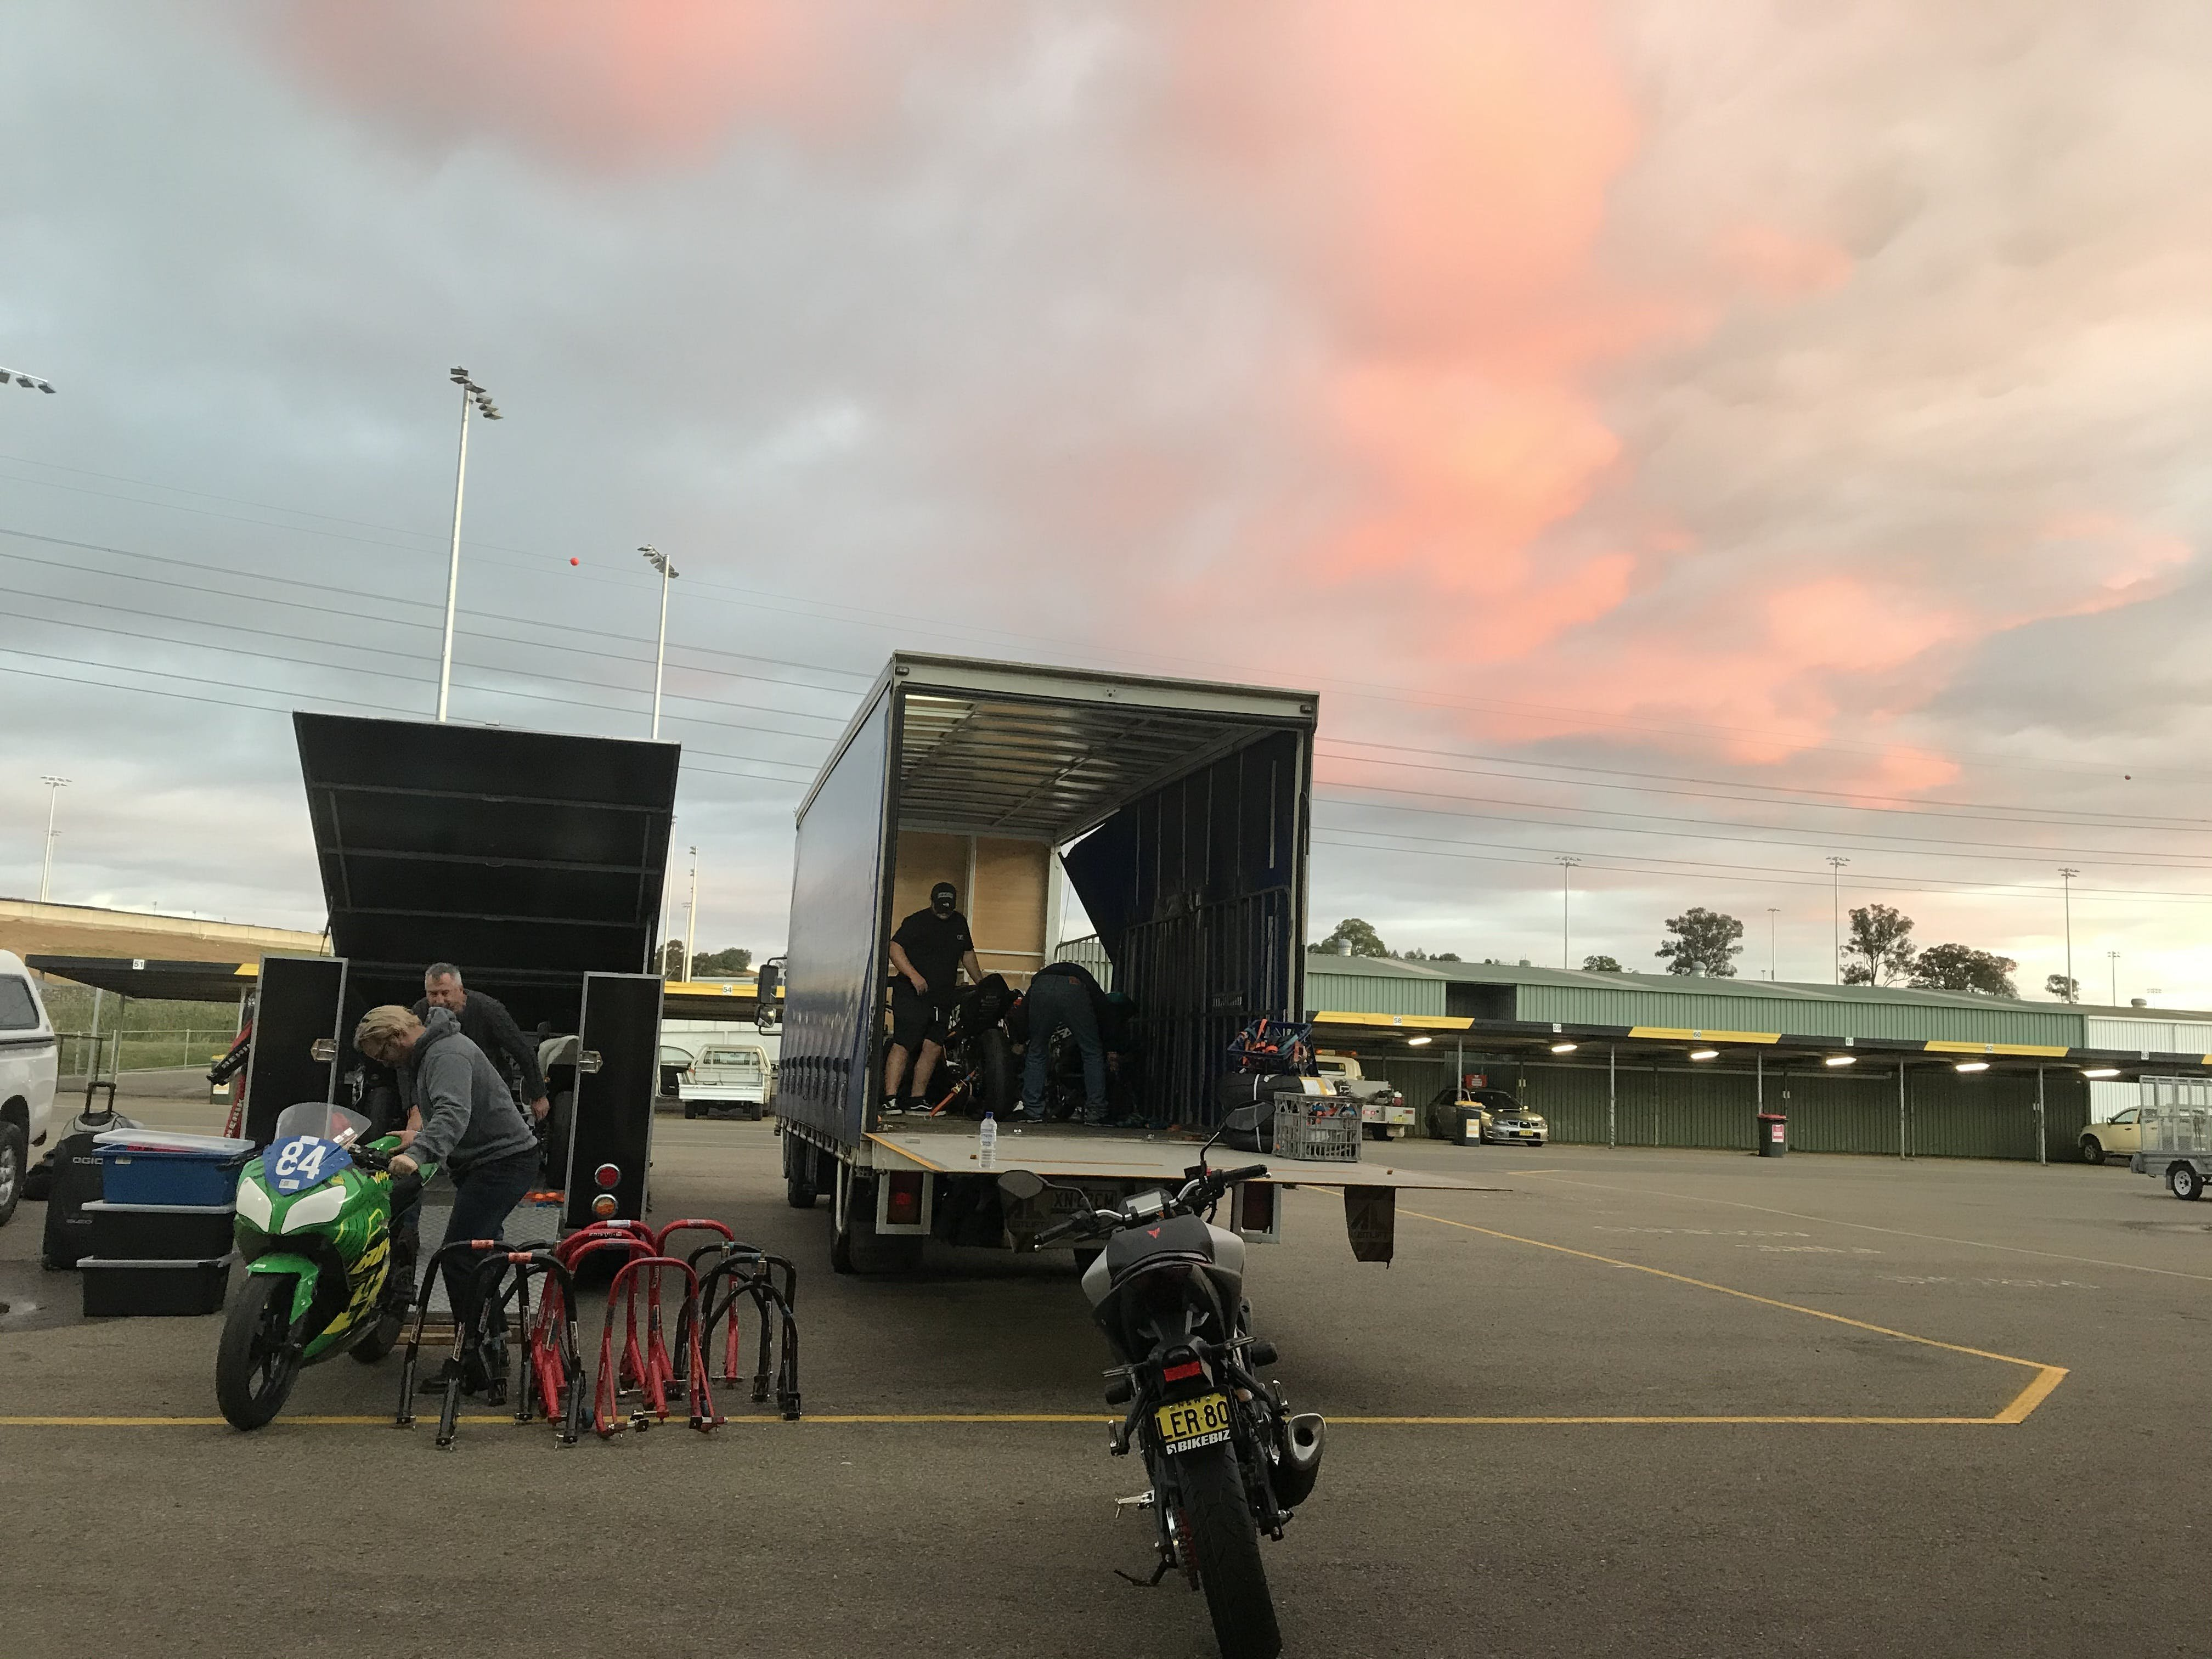 Motorcycles being loaded into a truck with a pink and blue sky background